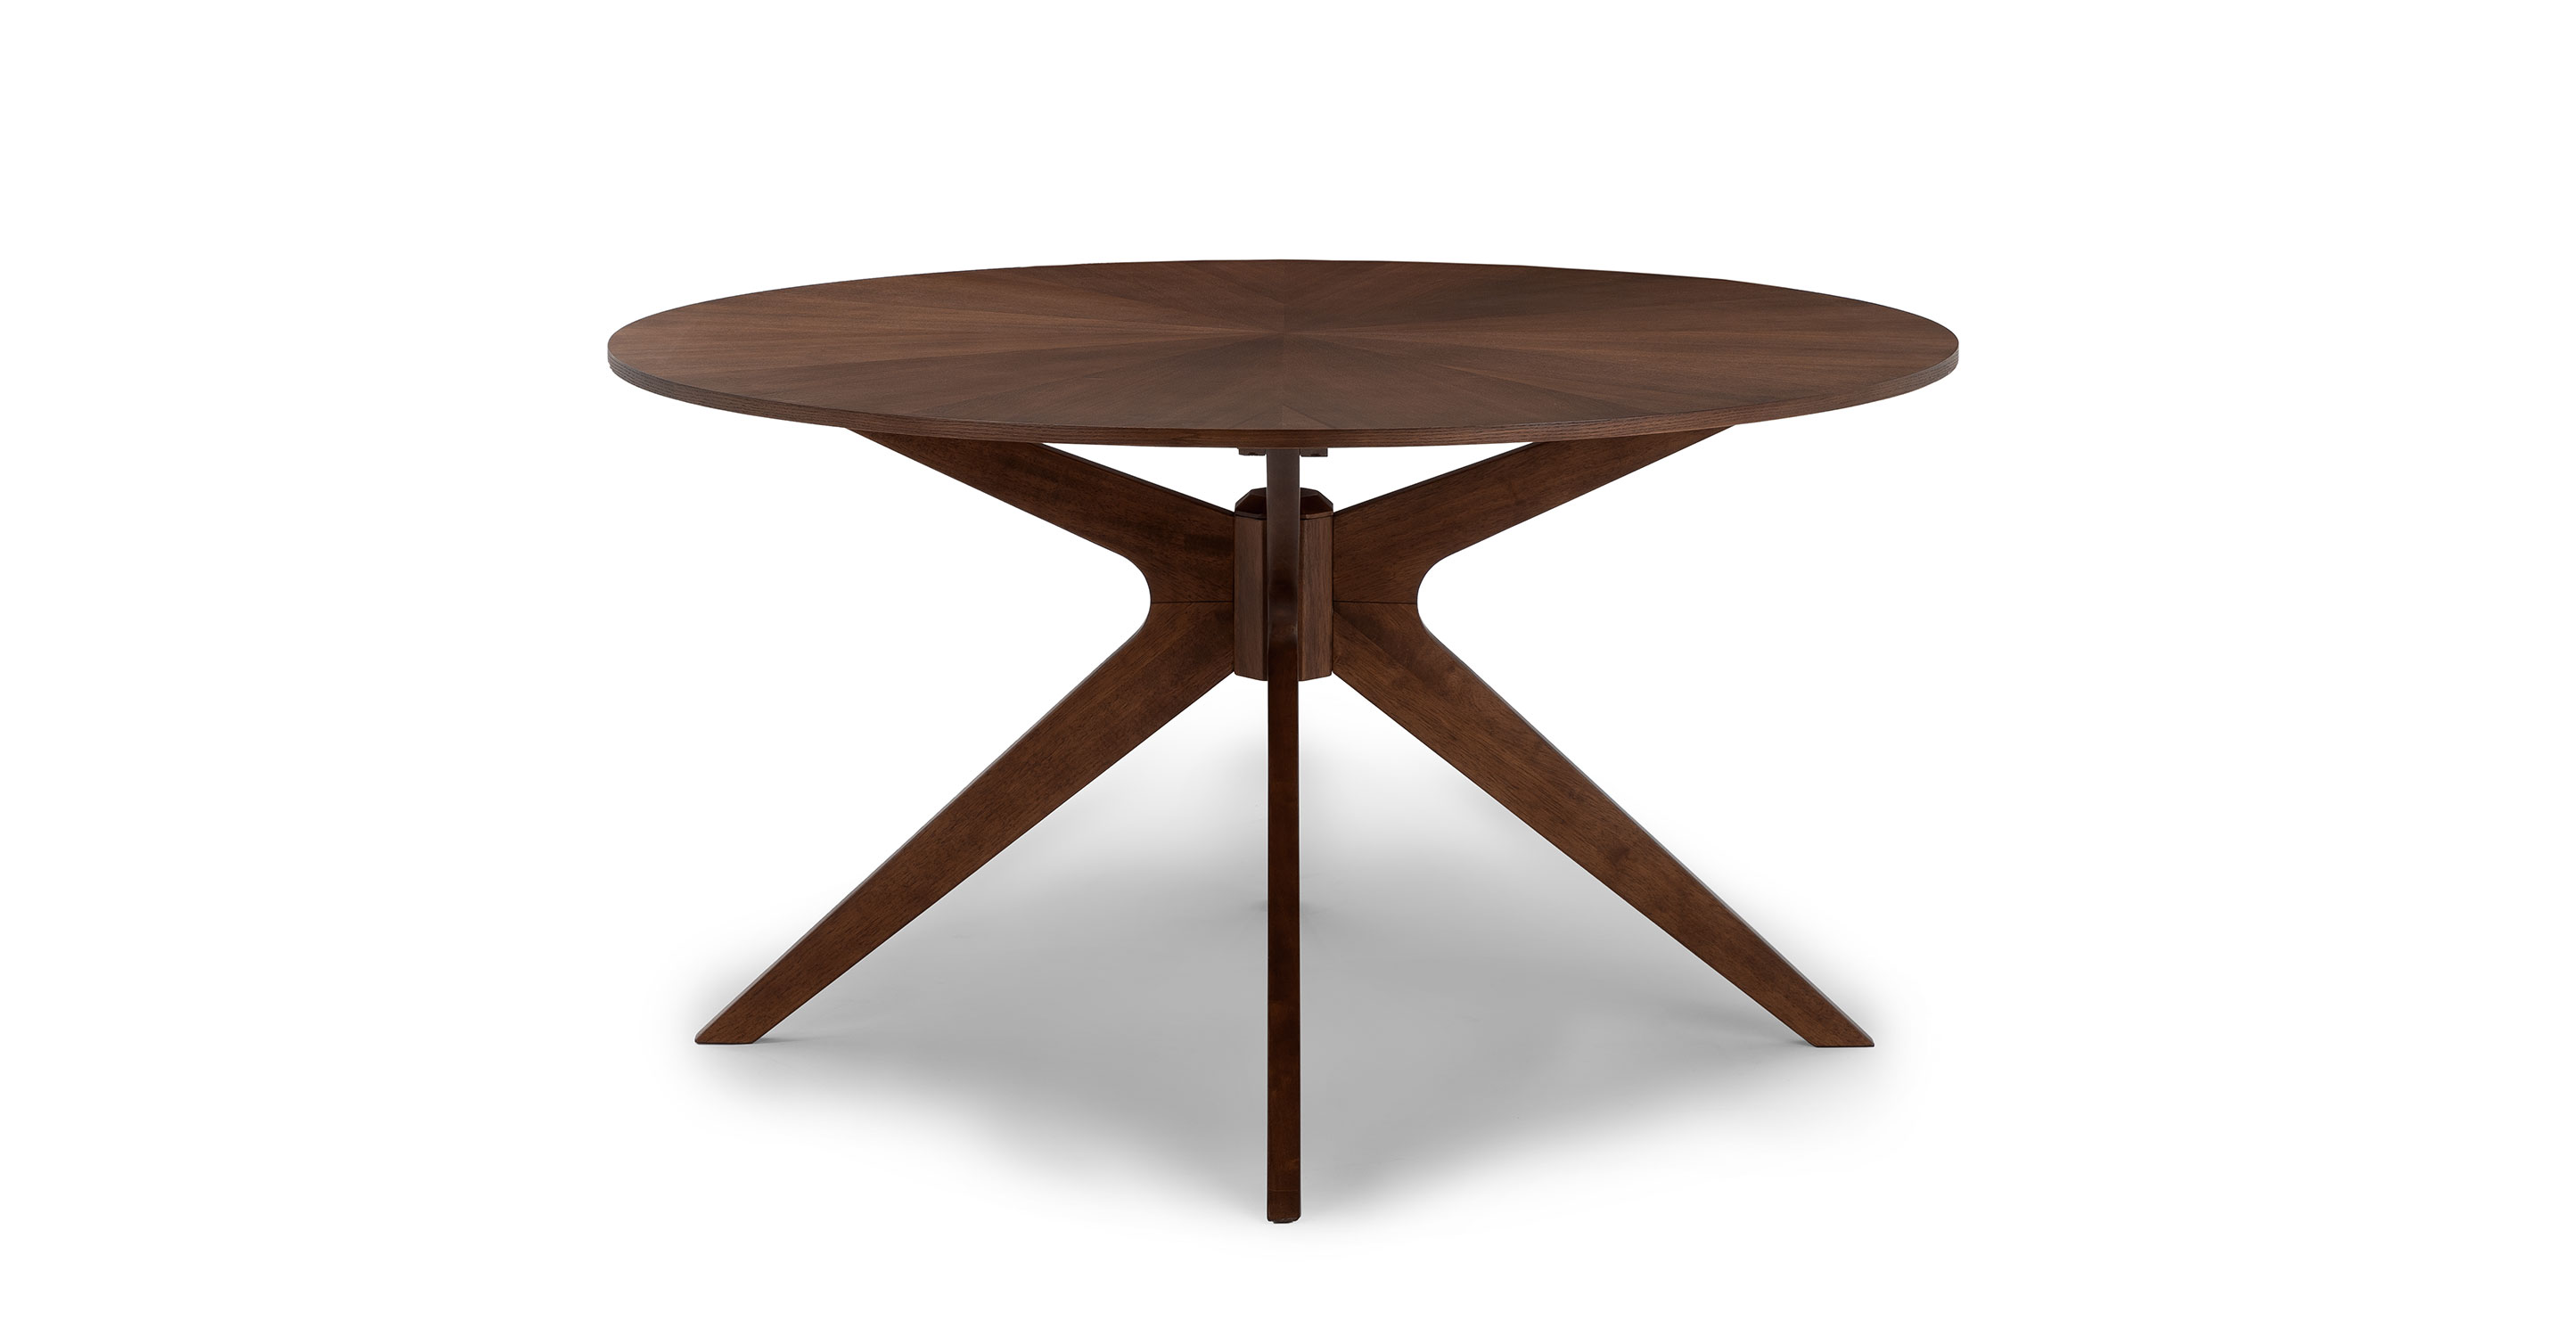 30 Walnut Wood 4 Person Round Dining Table Conan Article